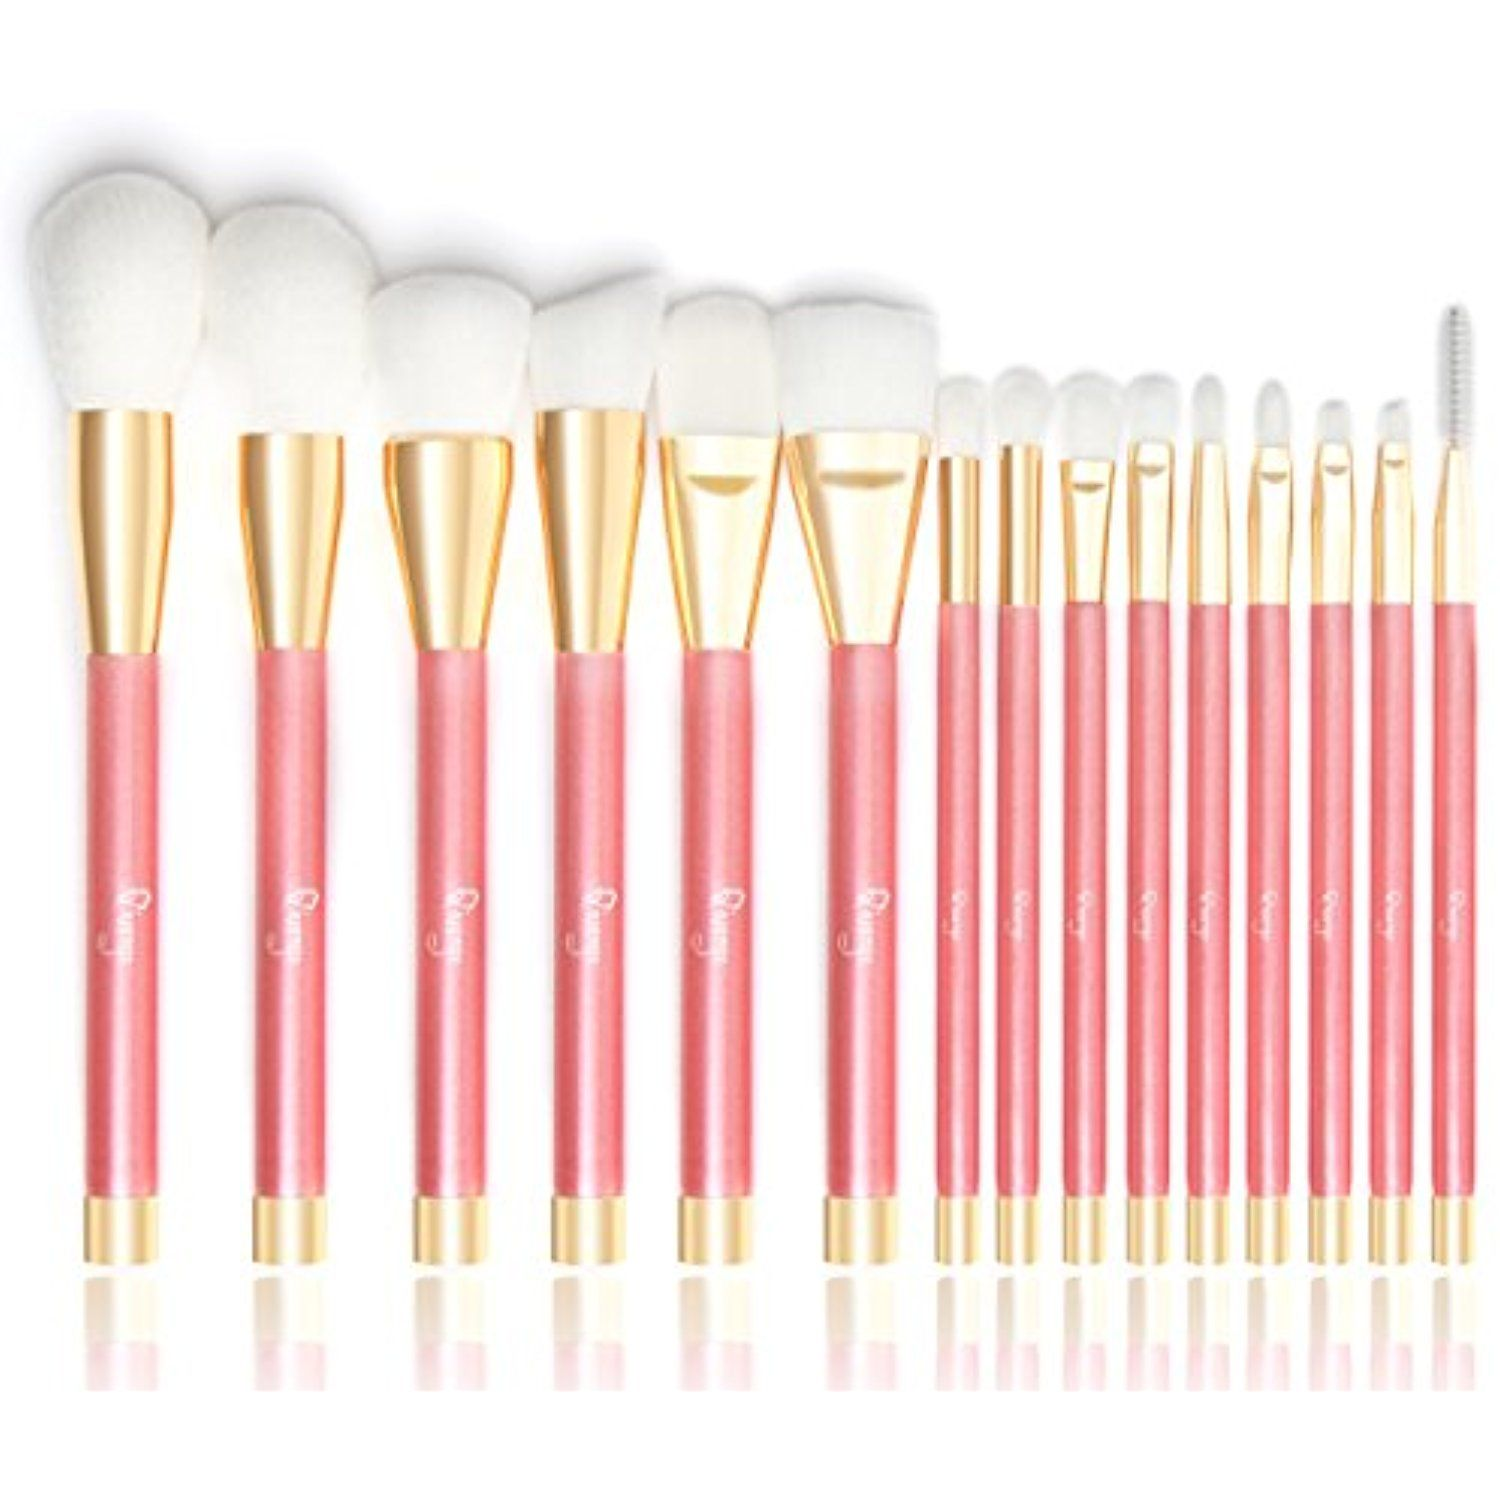 Qivange Makeup Brush Set, Vegan Powder Contour Eyeshadow